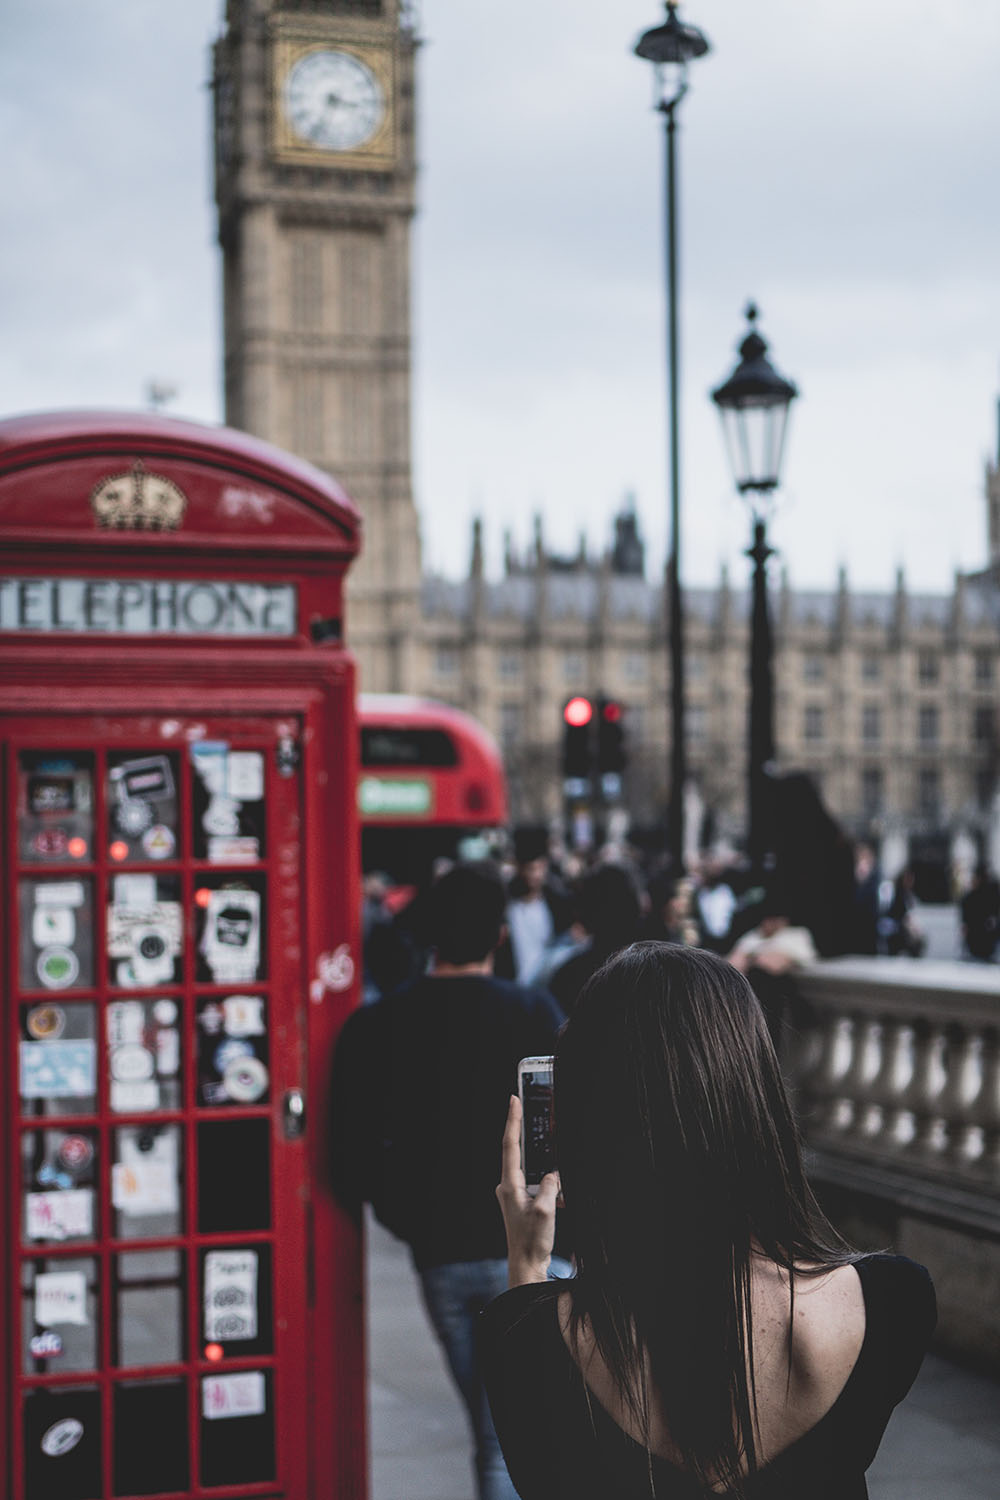 A red phone box in front of Big Ben, London. Photo Credit: Paul Gilmore